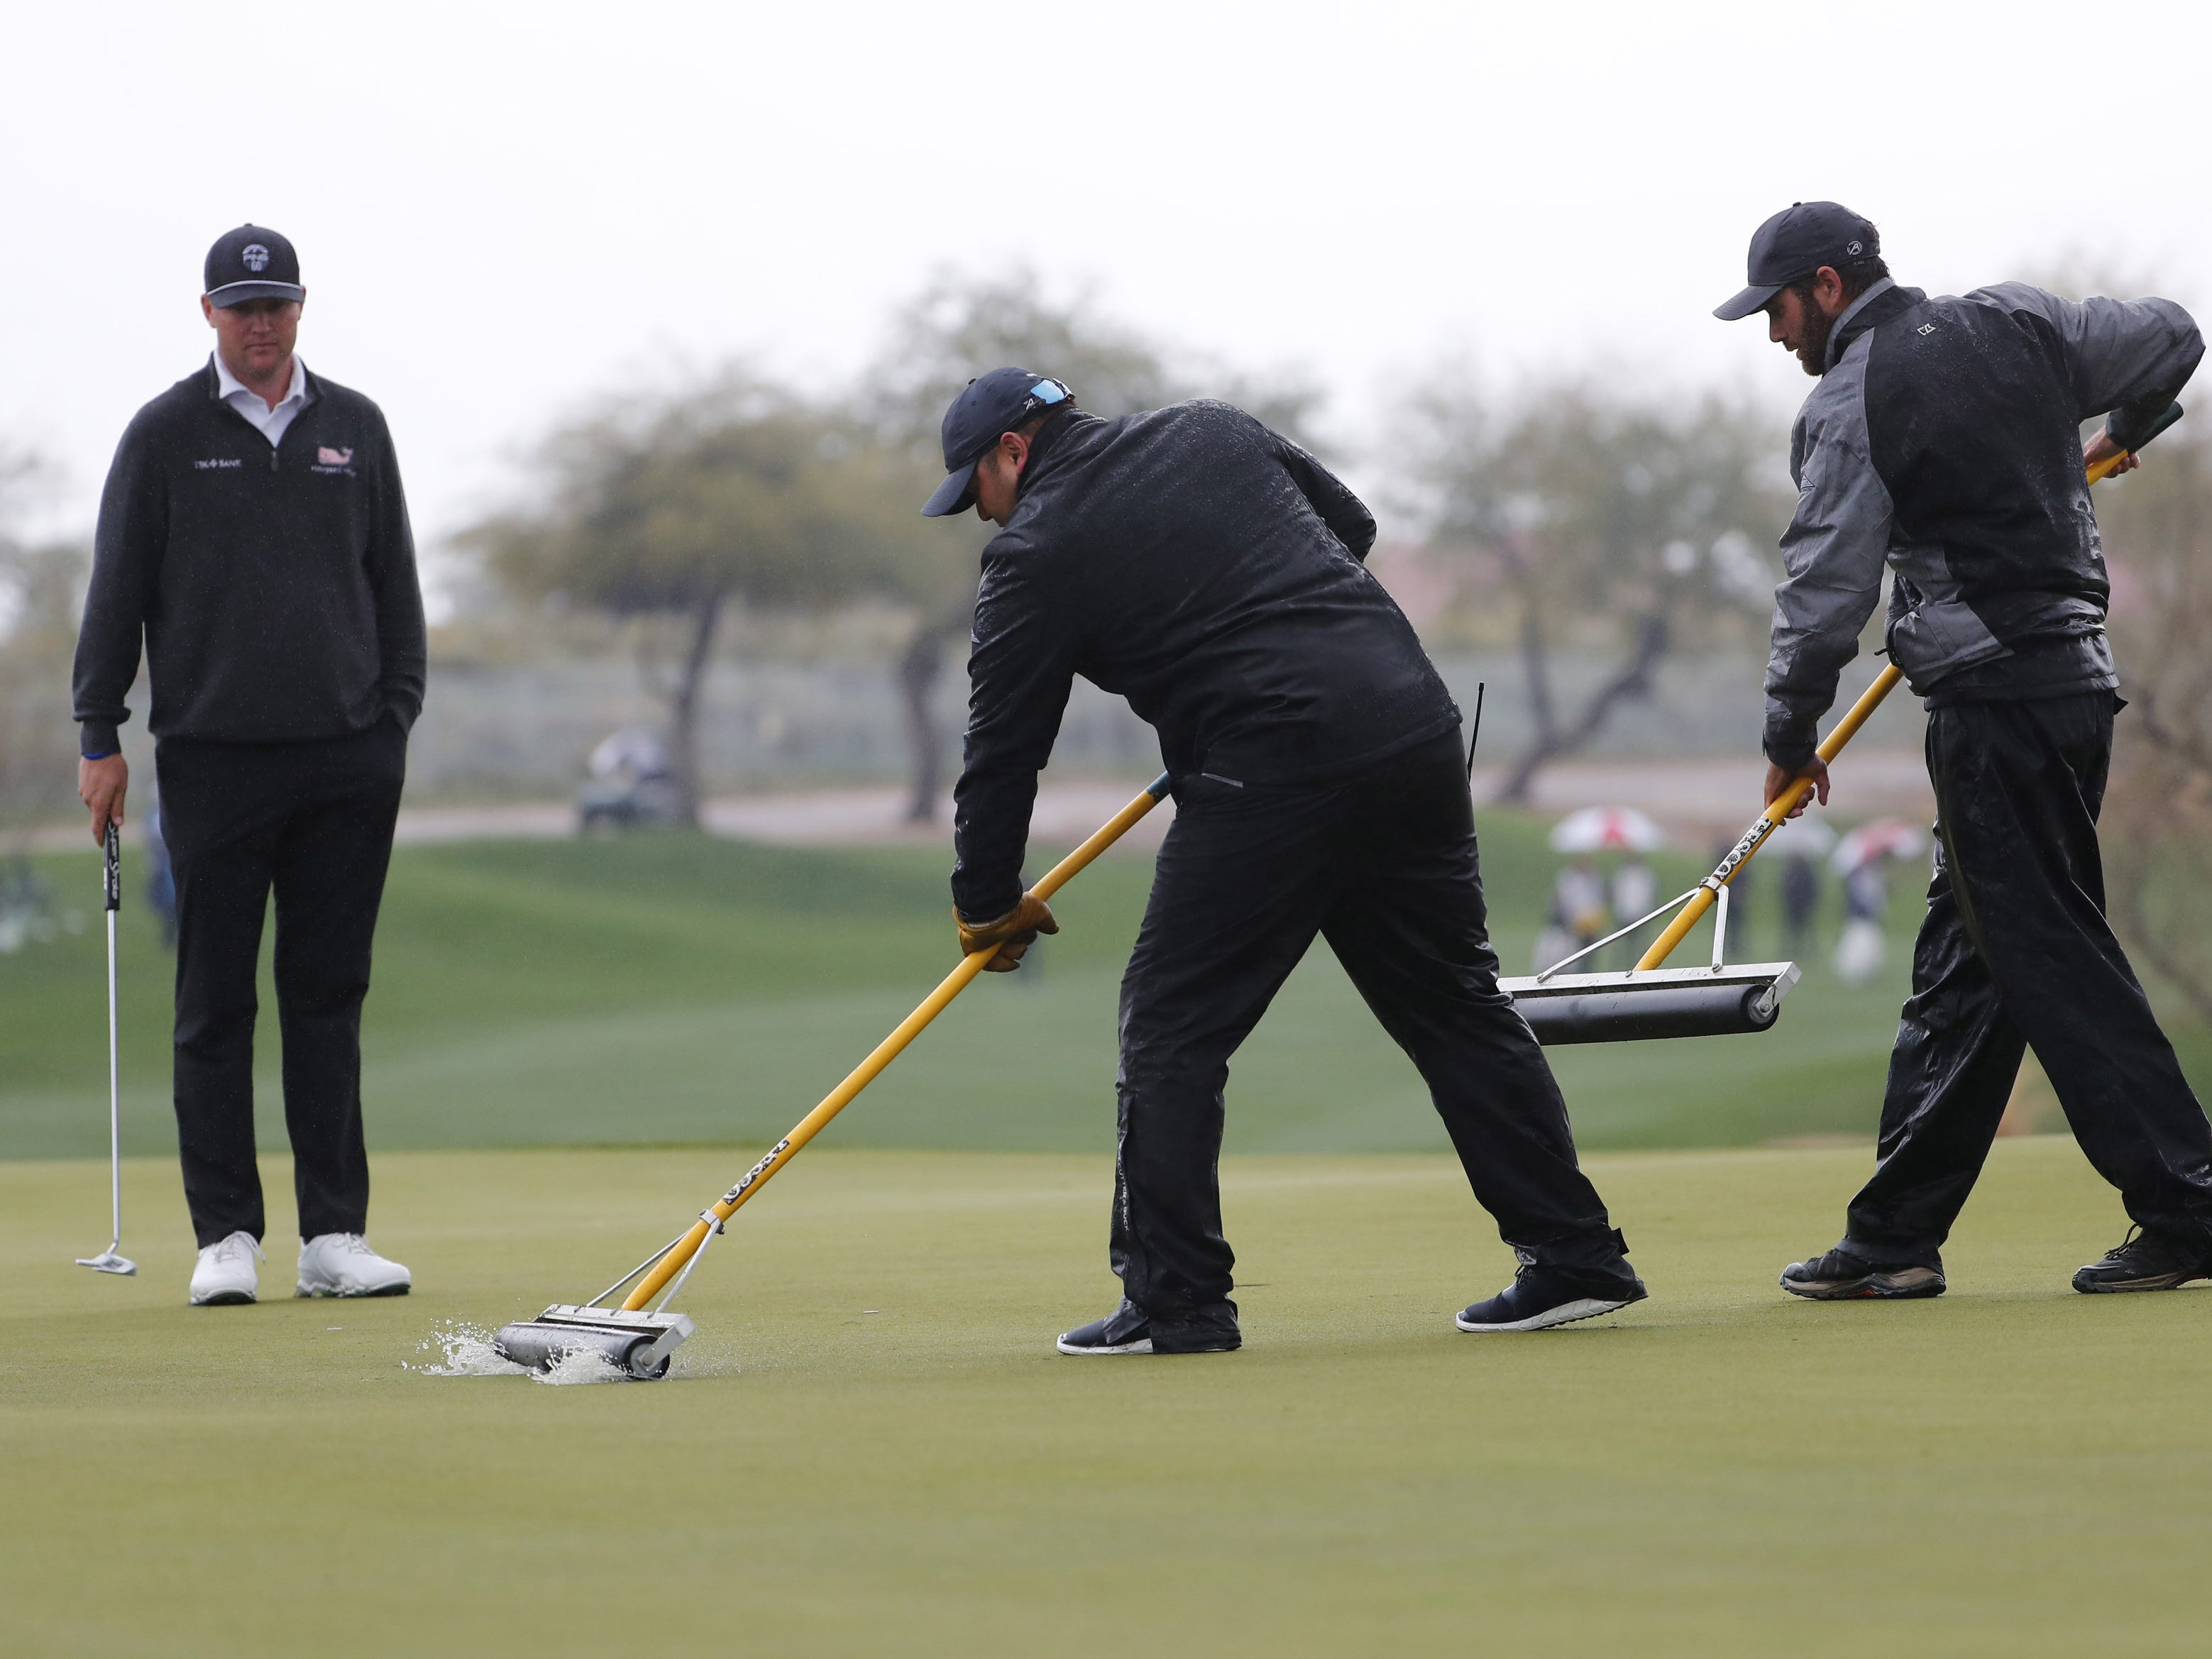 Grounds crew roll water off the 14th green during the final round of the Waste Management Phoenix Open at the TPC Scottsdale Feb. 3, 2019.